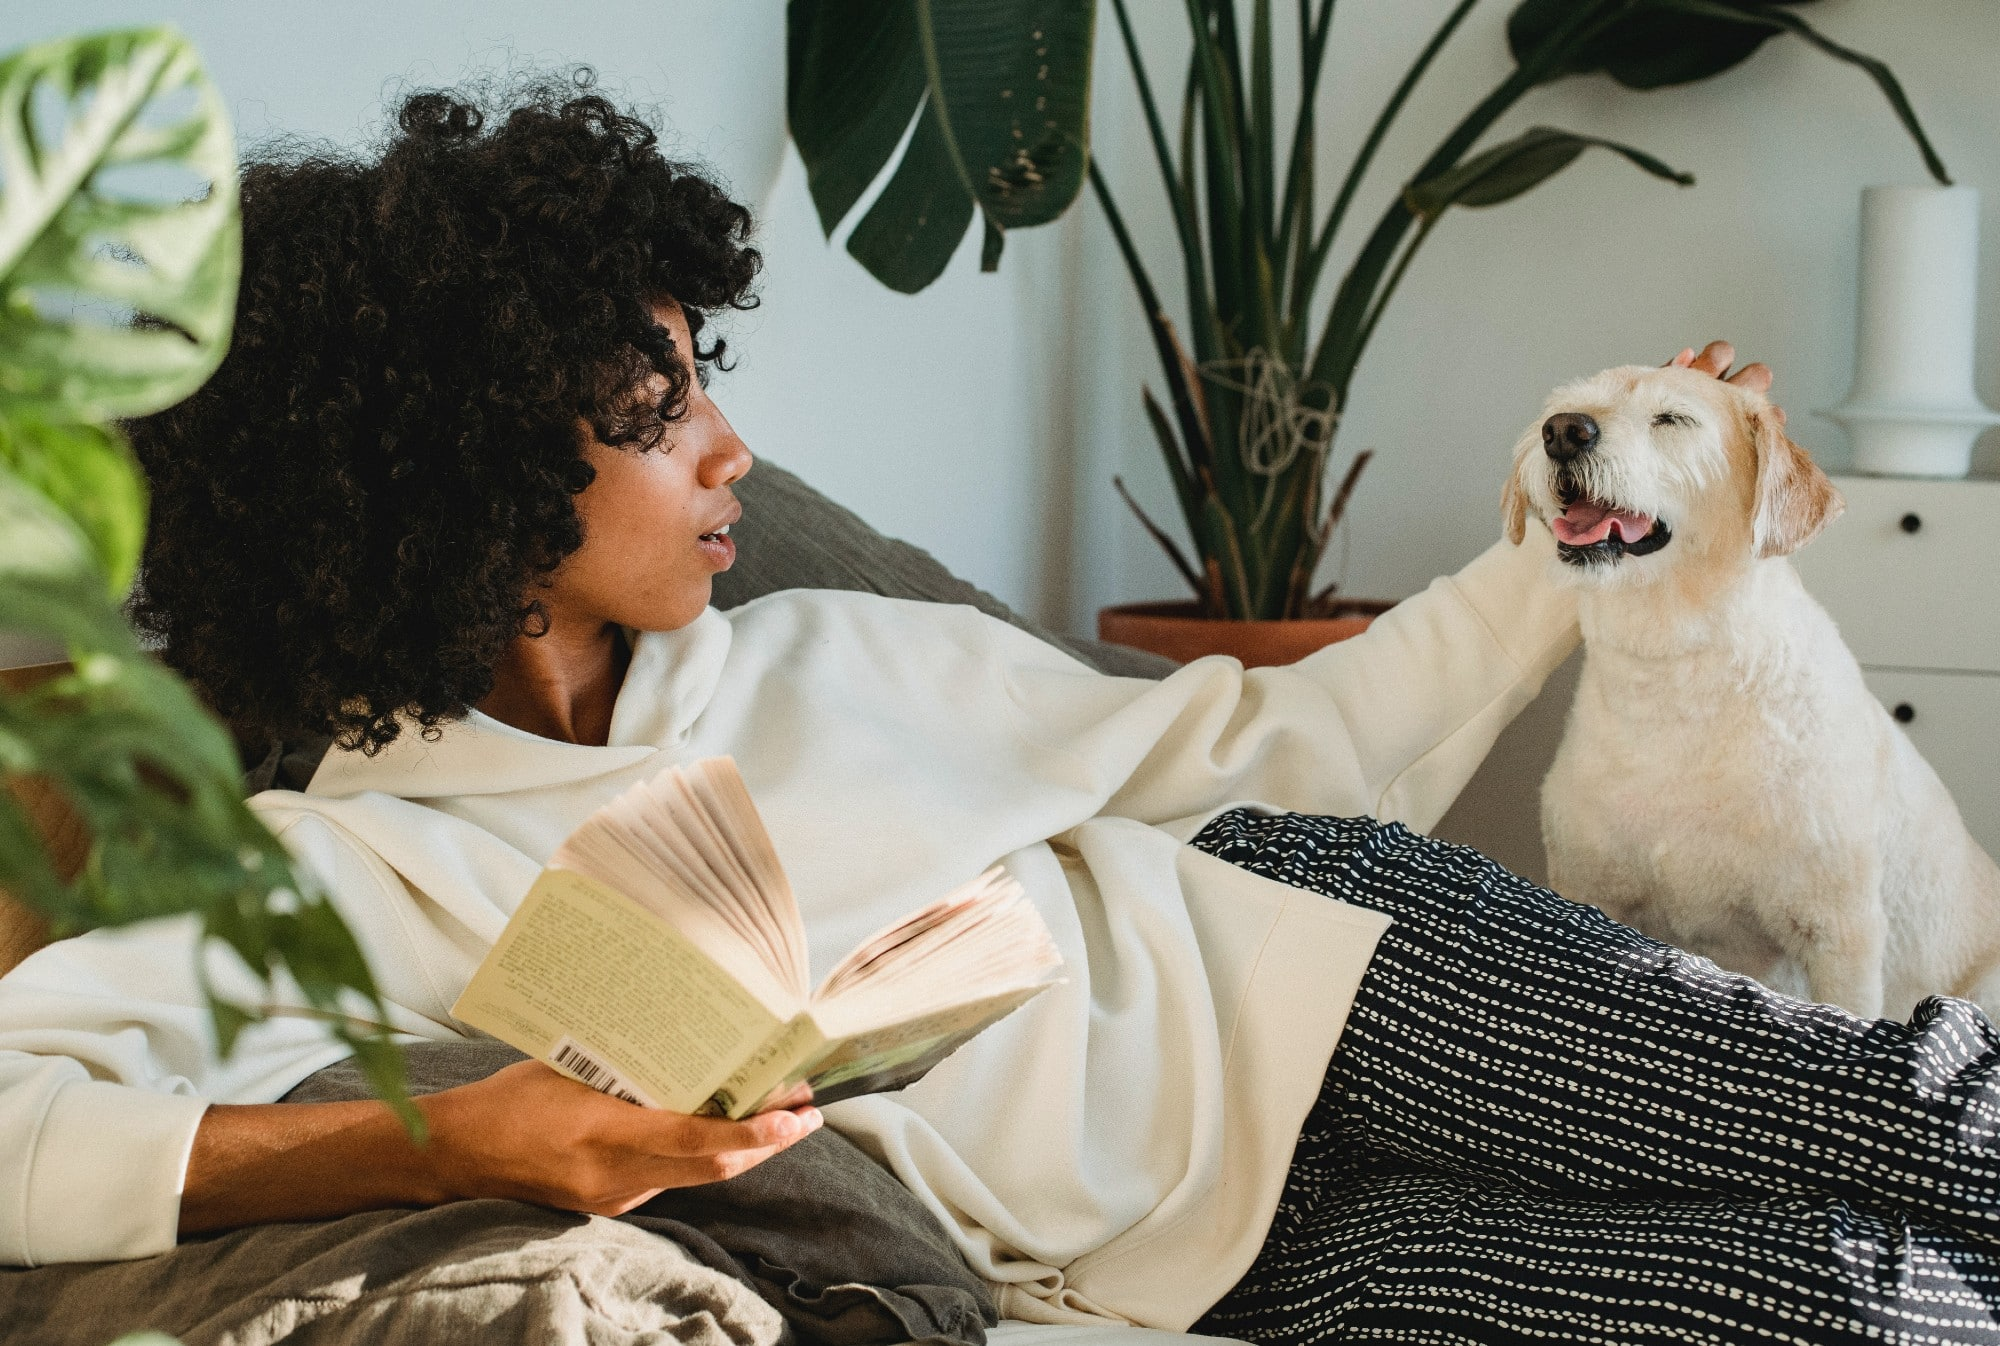 How to Find the Perfect Dog Sitter for Your Pup